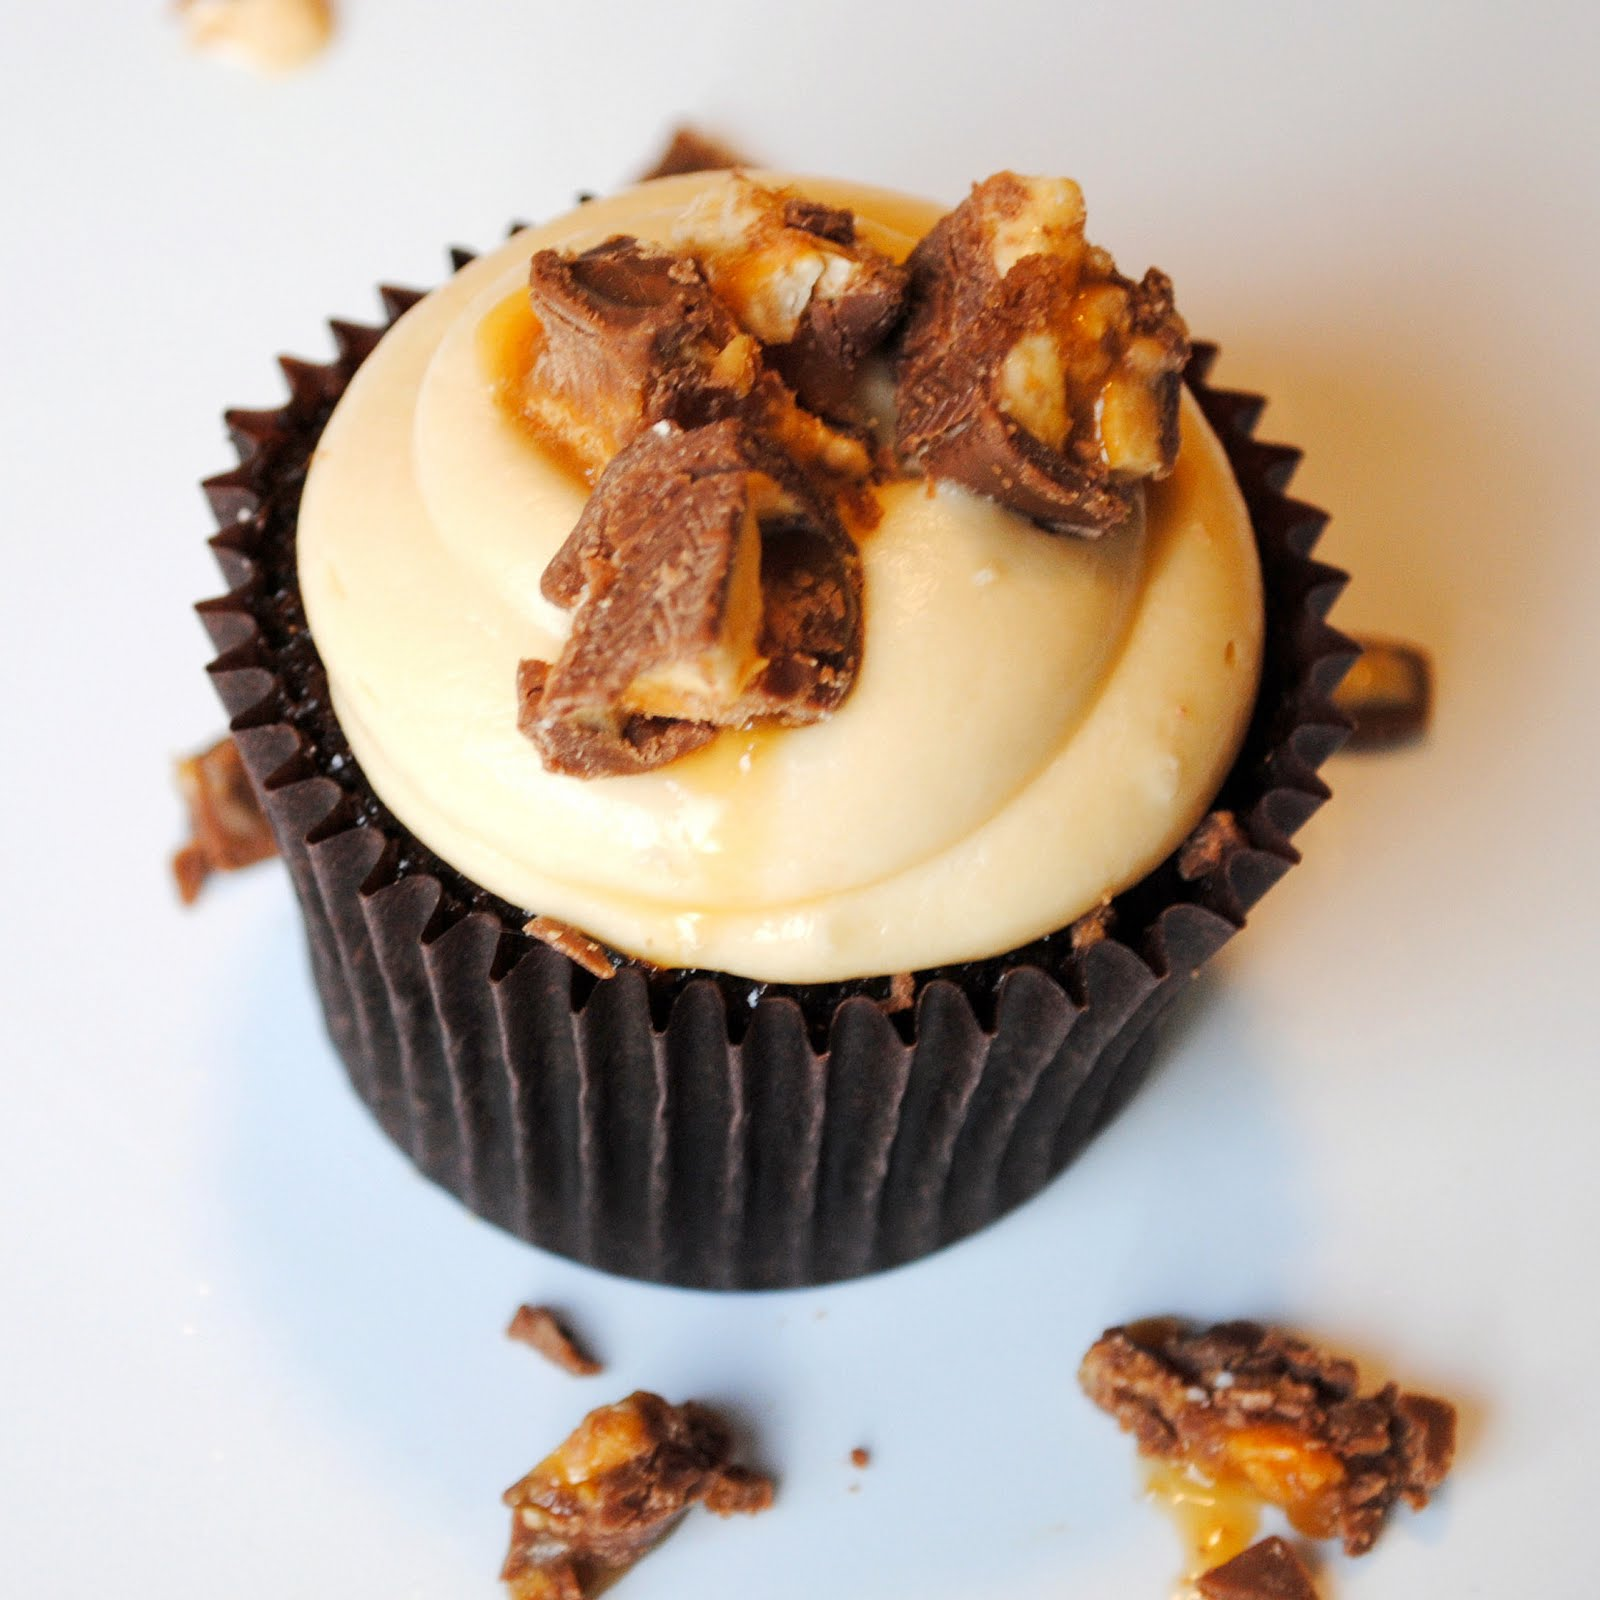 Homemade By Holman: Snickers Cupcakes